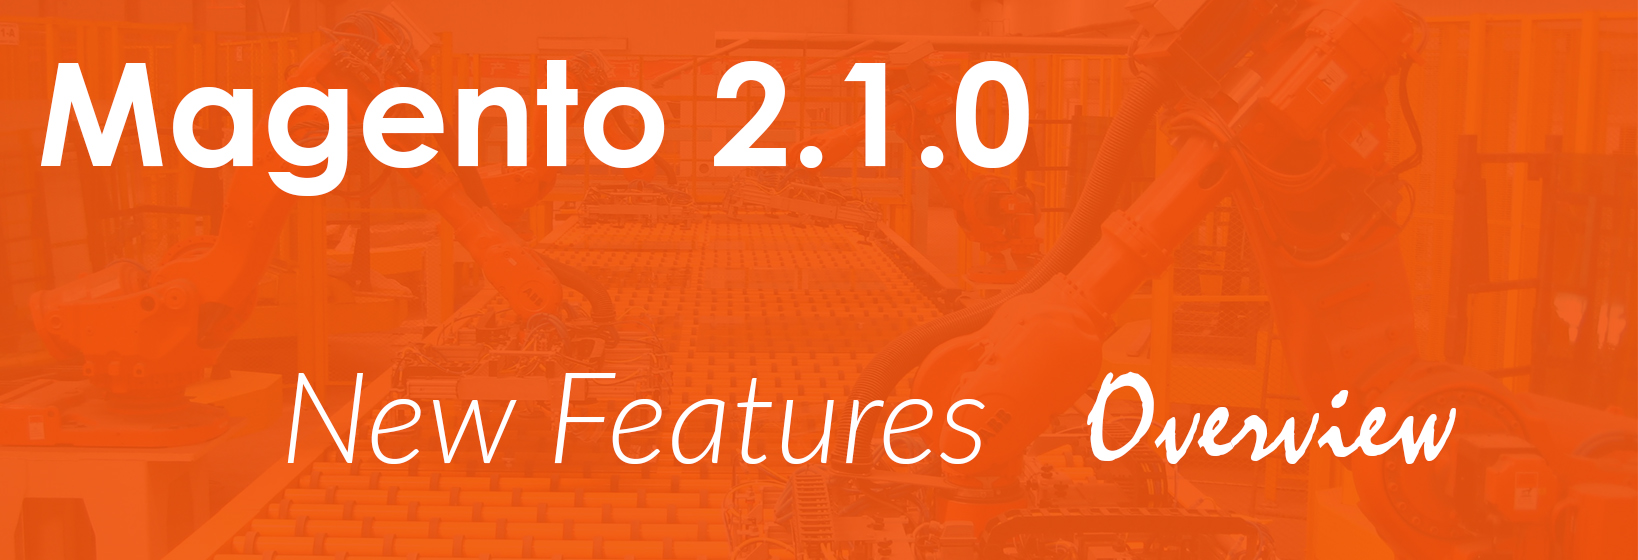 Magento 2.1: New Release Cool Opportunities